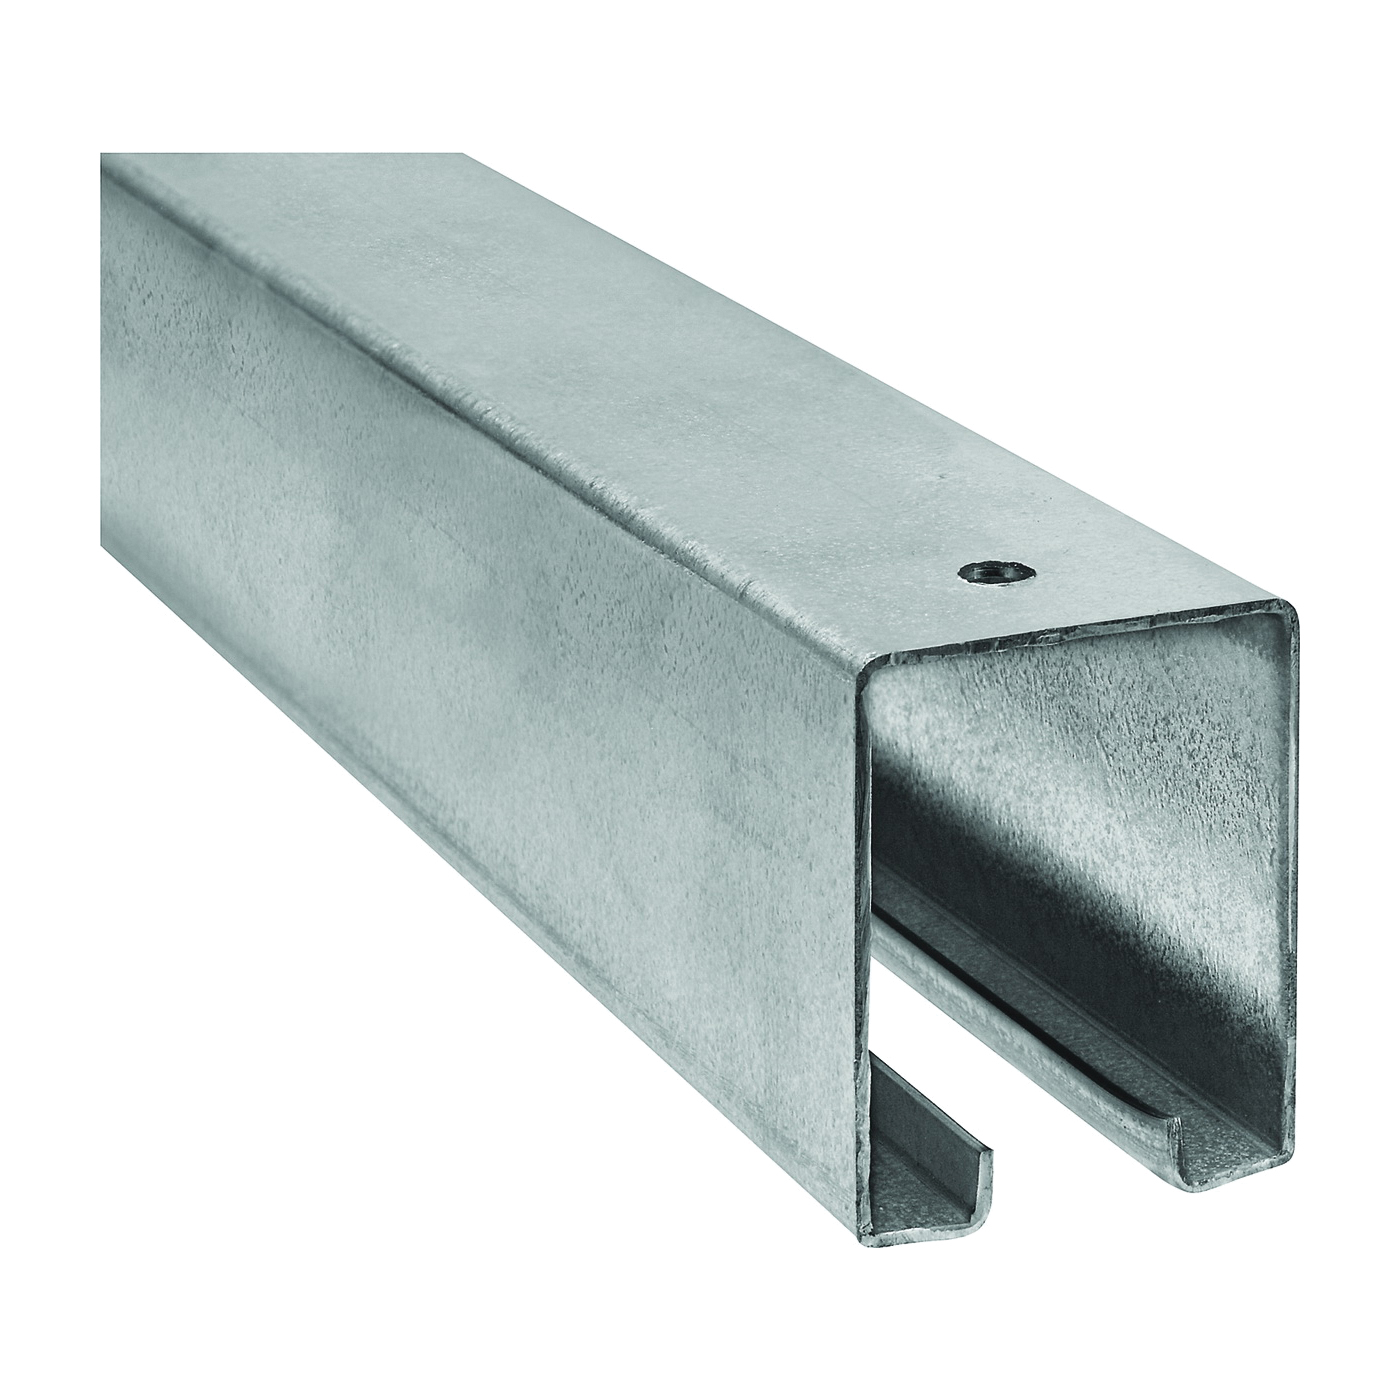 Picture of National Hardware N105-528 Box Rail, Steel, Galvanized, 1-57/64 in W, 2-13/32 in H, 20 ft L